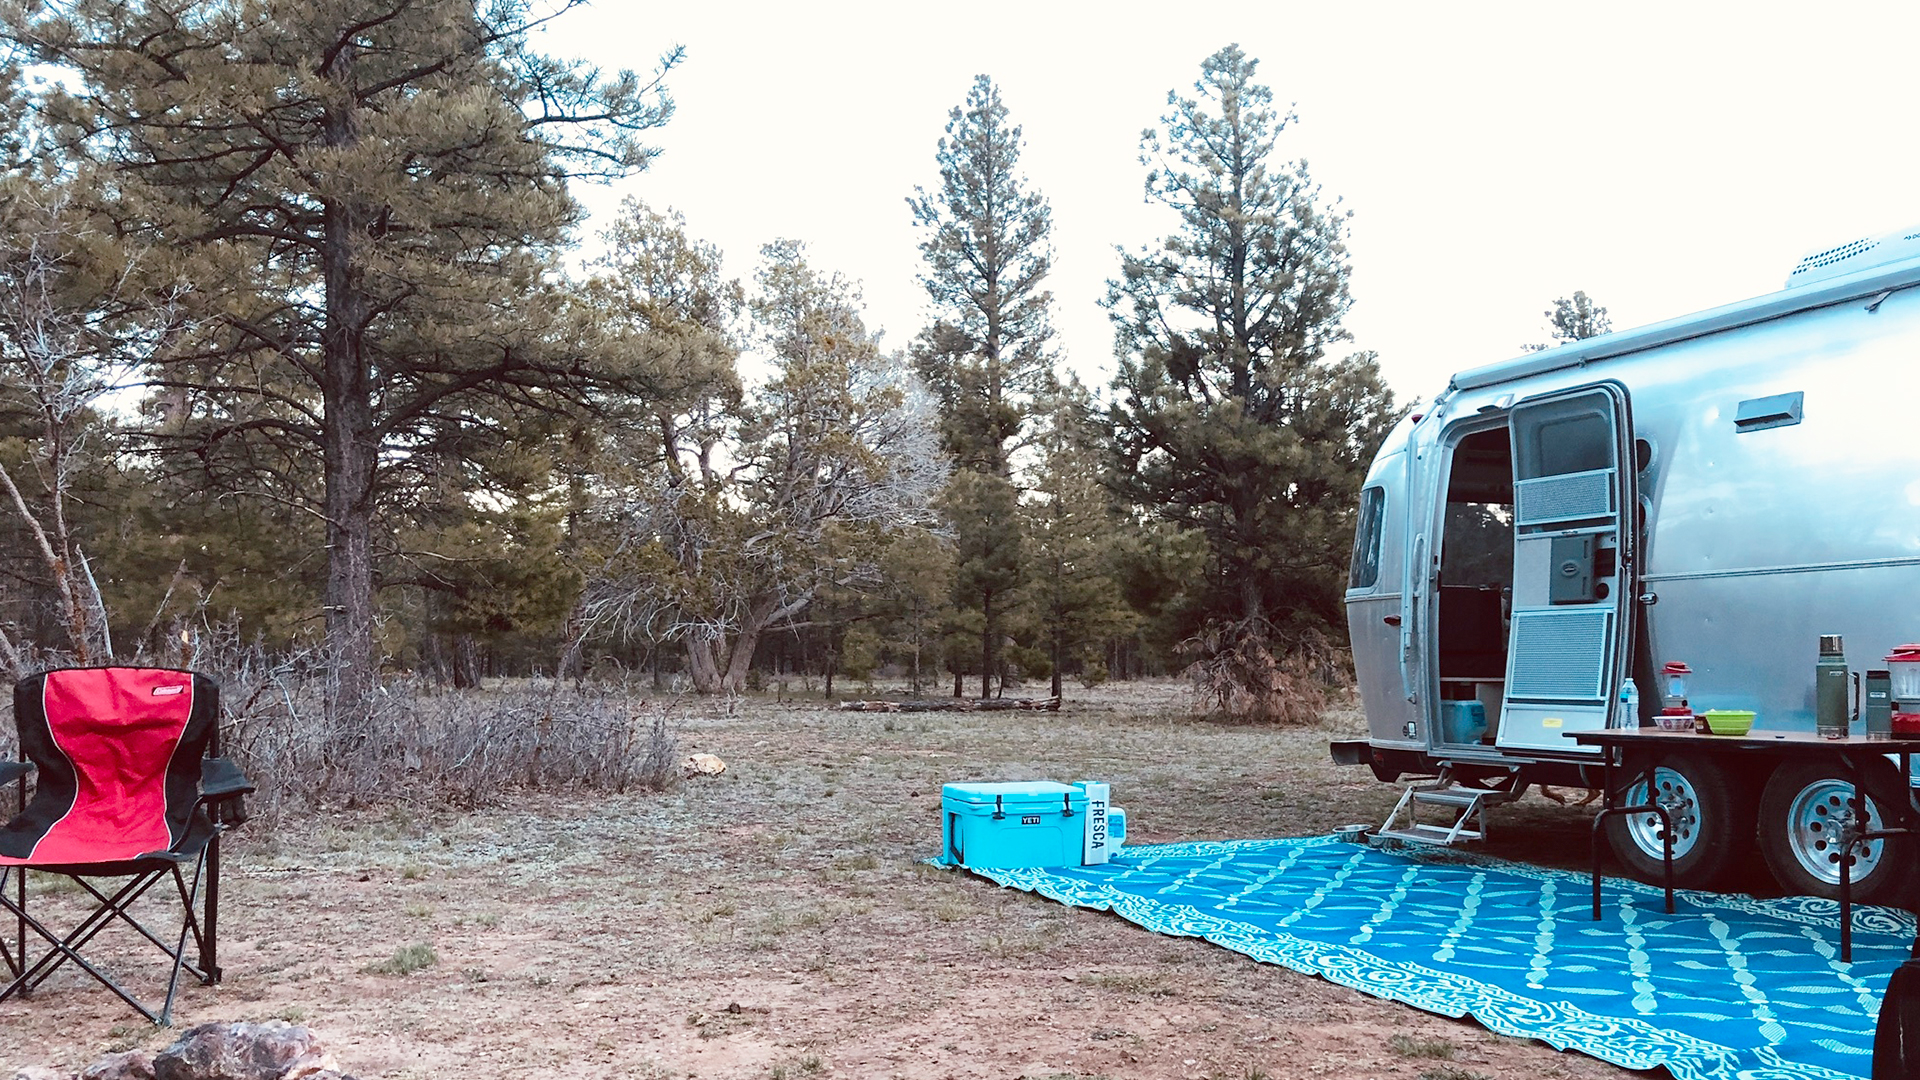 Coconino-Rim-Road-Kaibab-National-Forest-Camping-with-Airstream